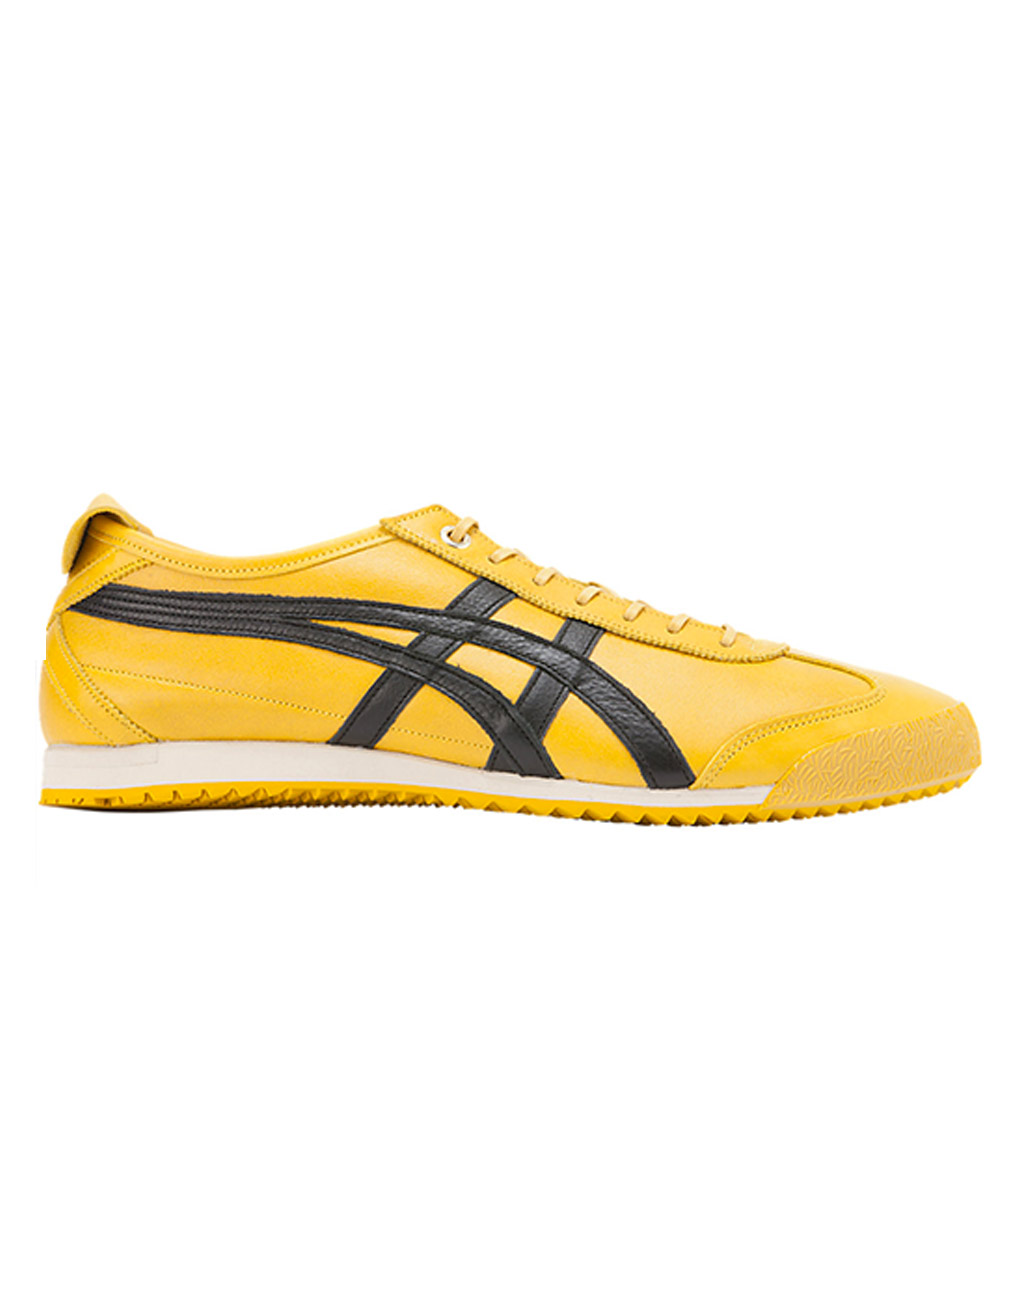 new arrivals 54321 53663 ONITSUKA TIGER - MEXICO 66 (Tai-Chi Yellow / Black) D838L